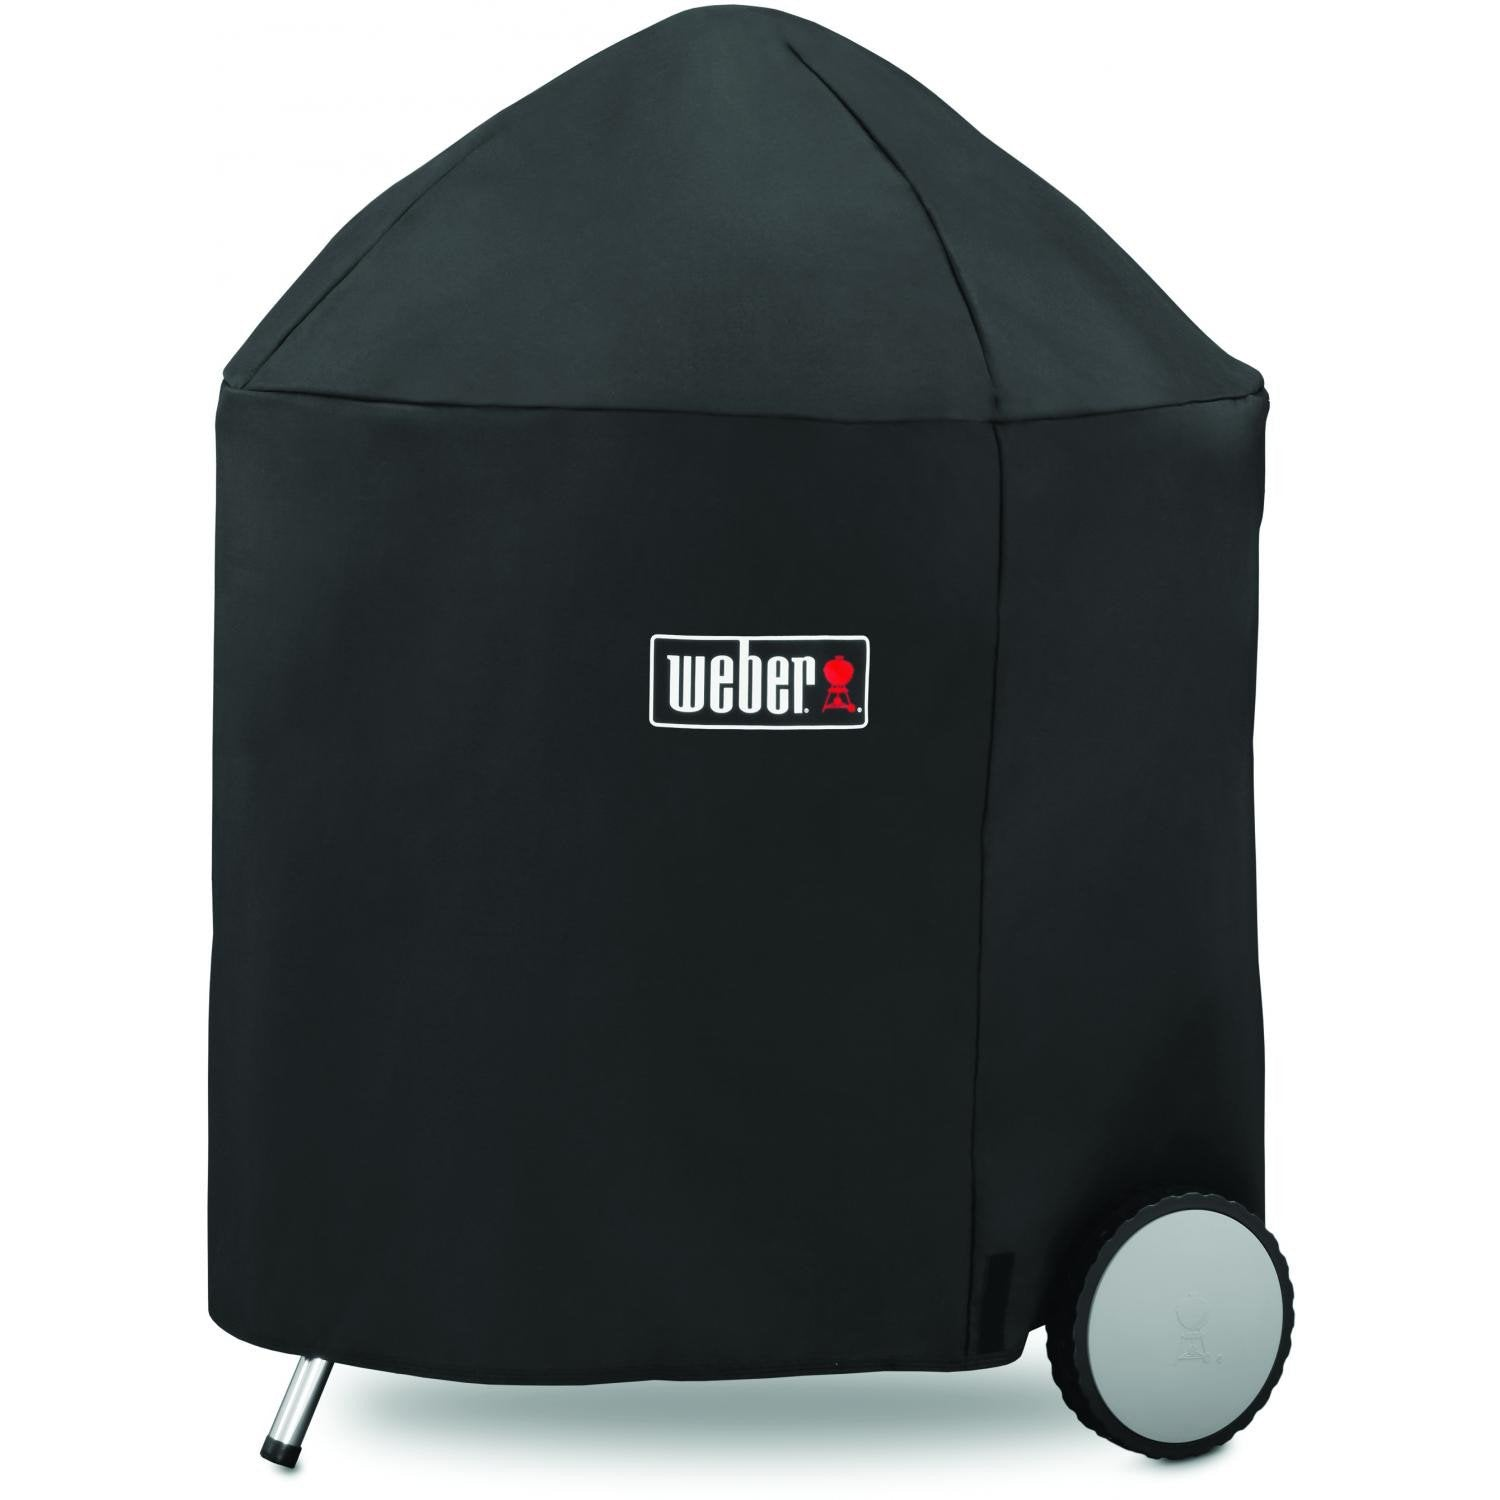 Weber 7153 Premium Grill Cover for 26-Inch Weber Charcoal Grills